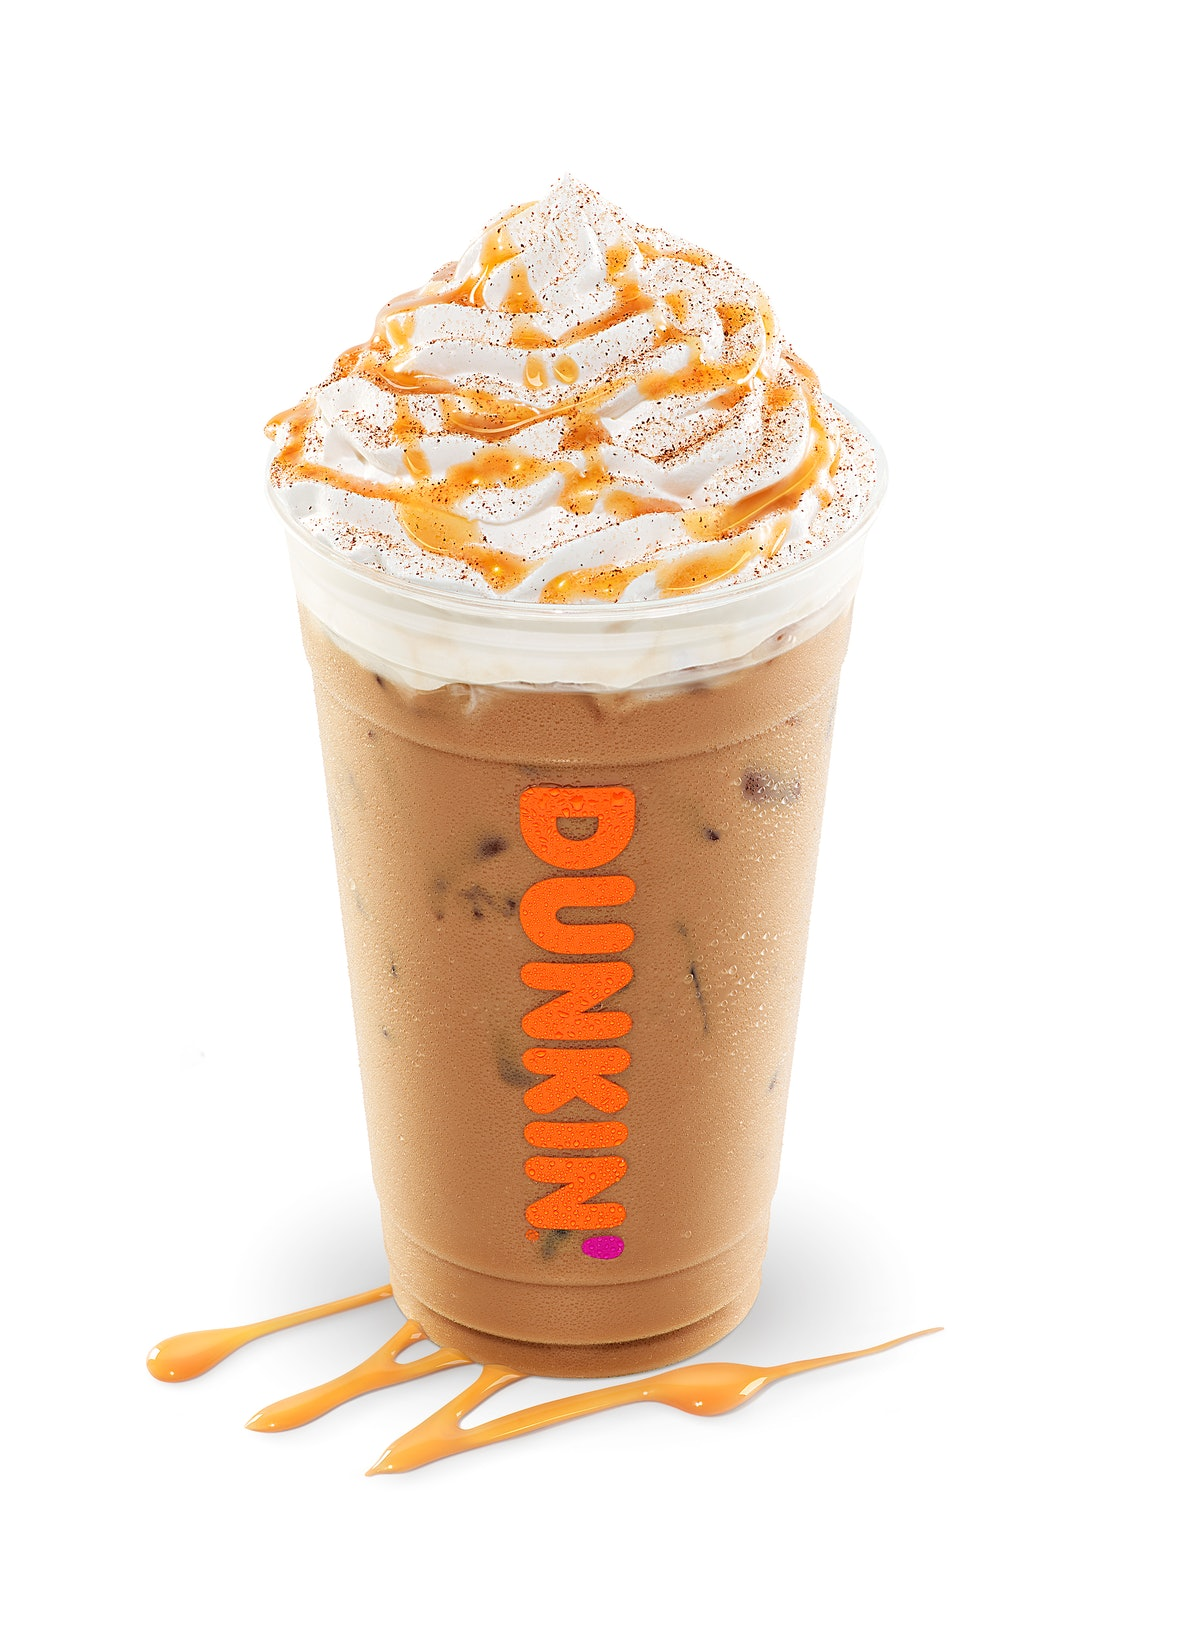 Dunkin's new PSL comes hot or iced.